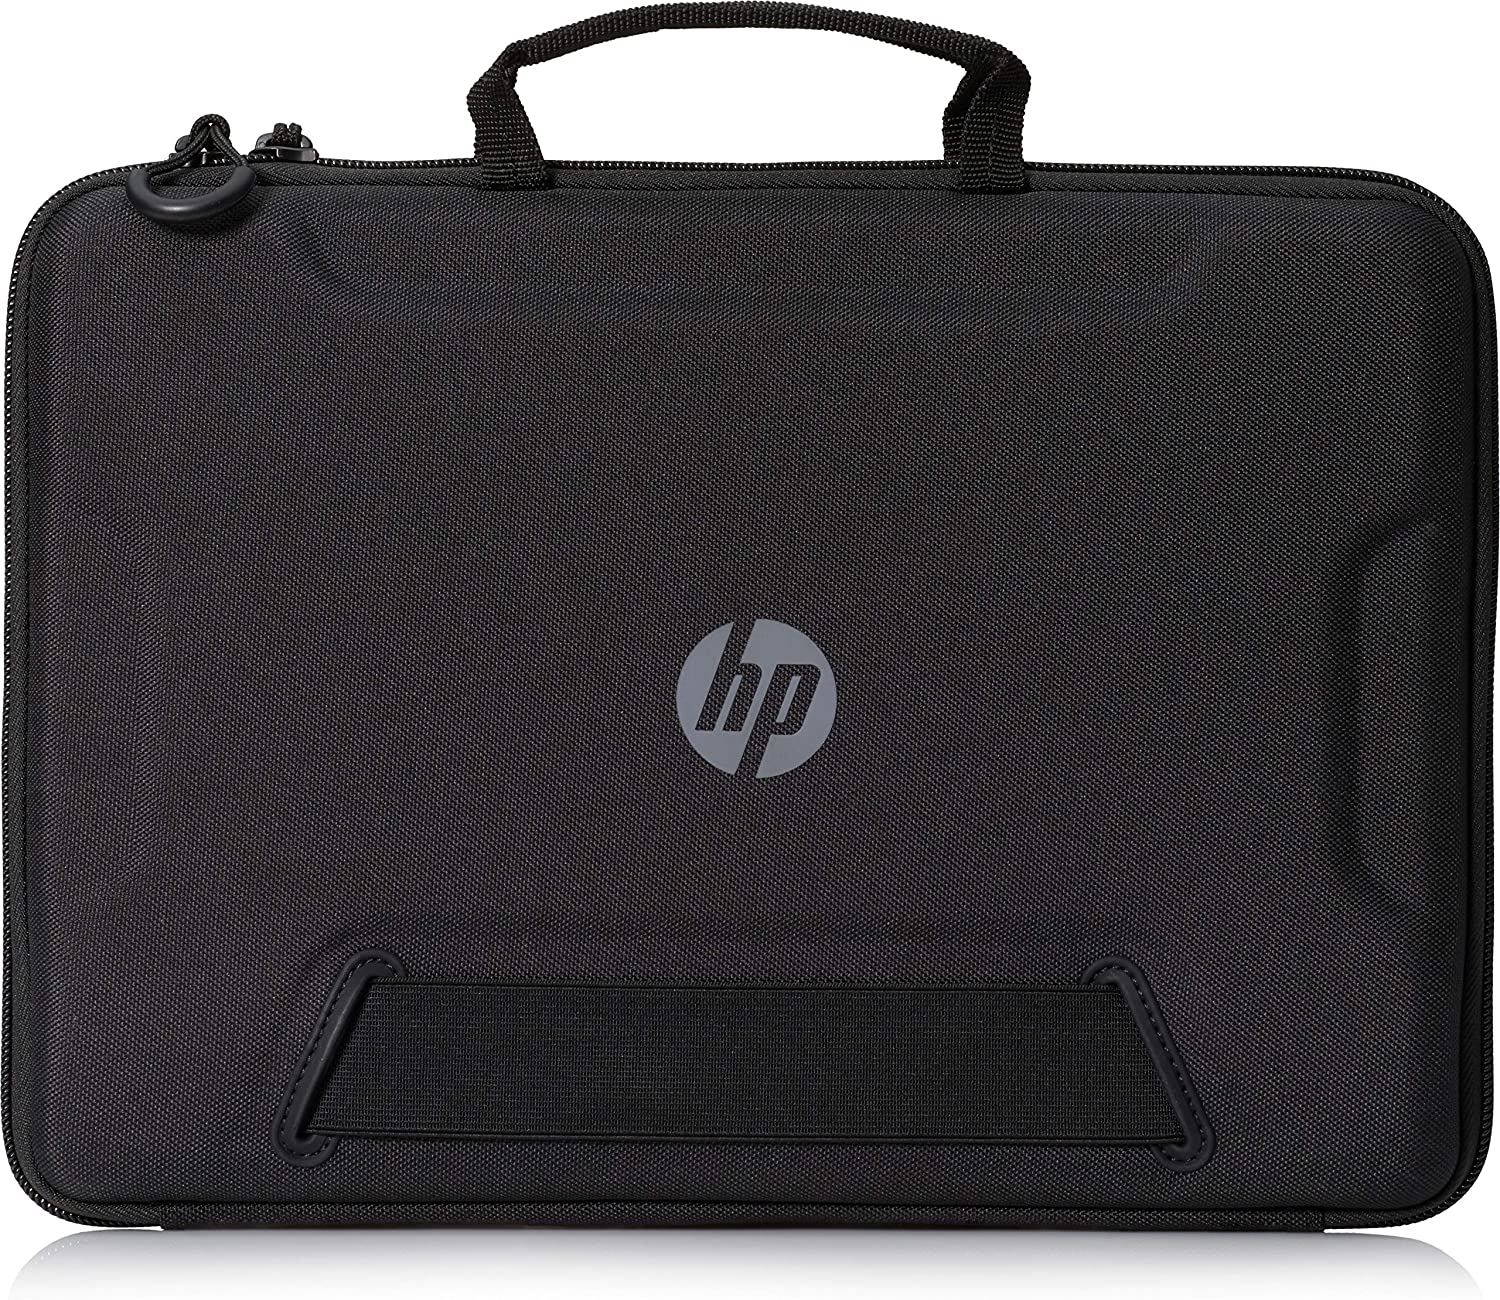 HP 2MY57AA Always-On Case - Notebook Carrying case - 11.6 inch - Black - for Chromebook 11 G6